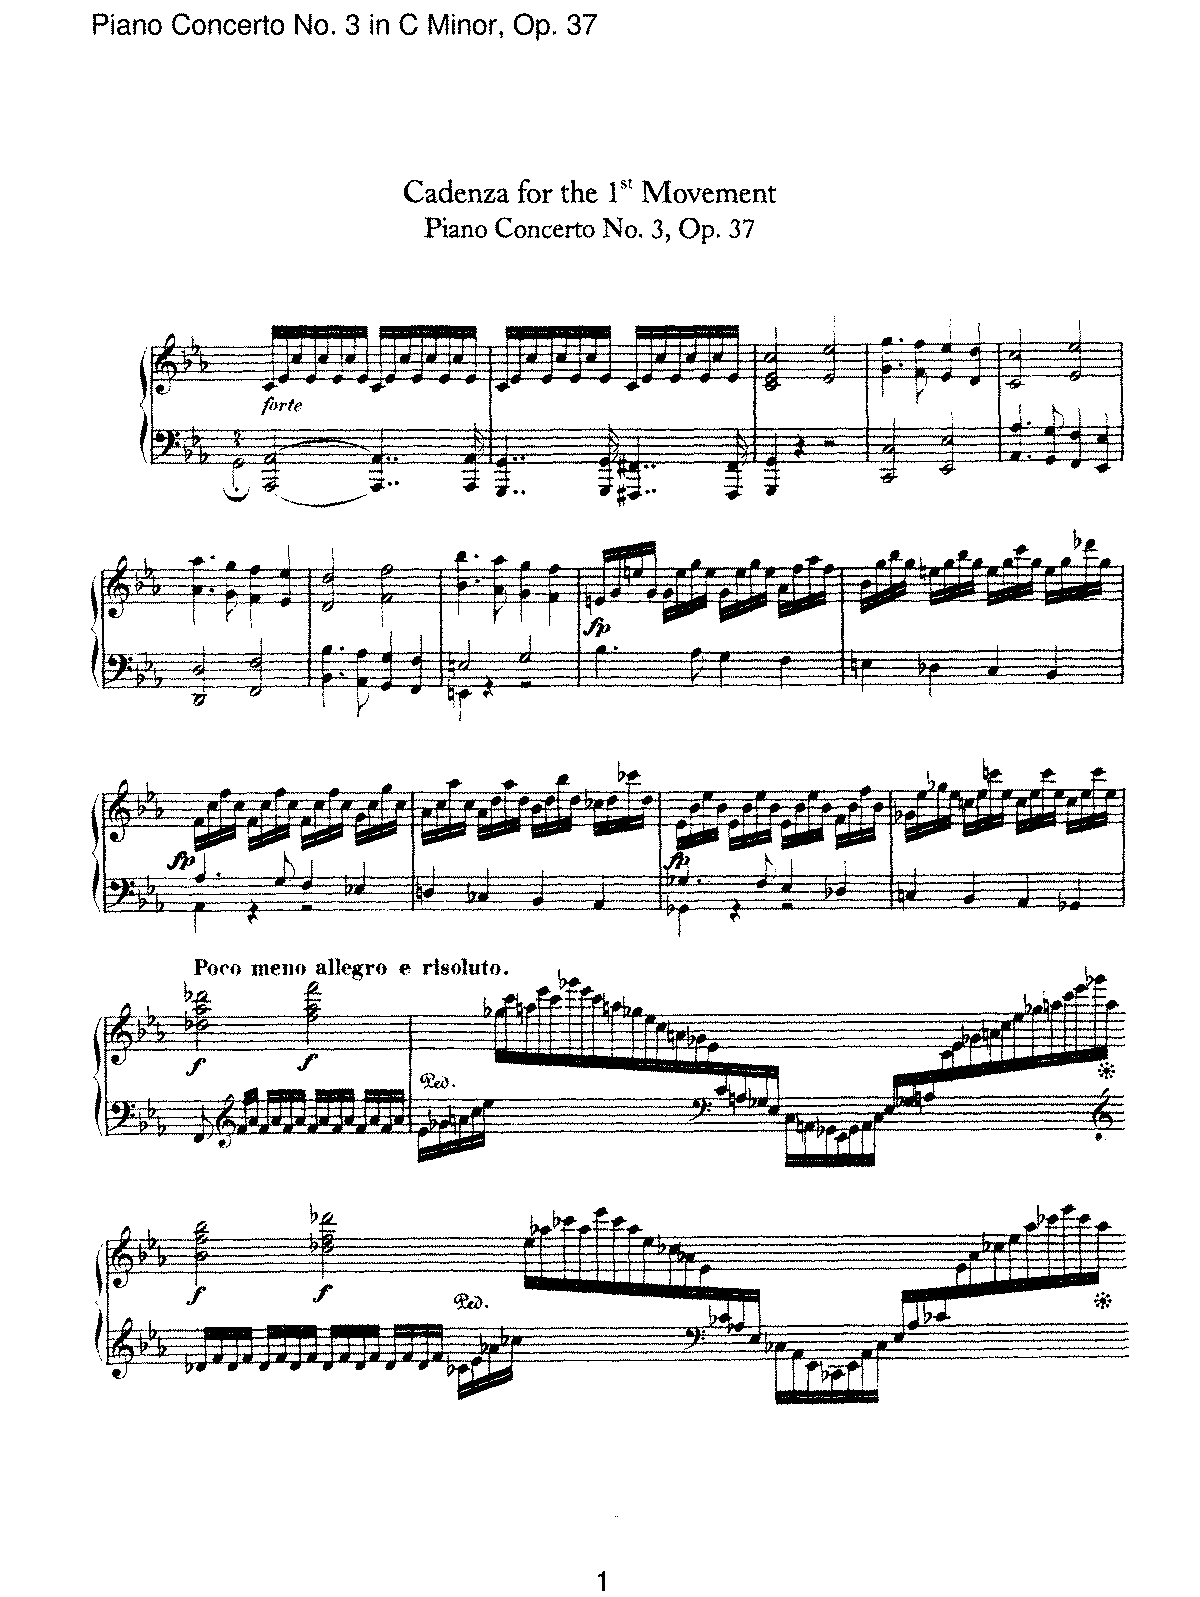 Piano Concerto No. 3 in C Minor, Op. 37-Cadenza.pdf